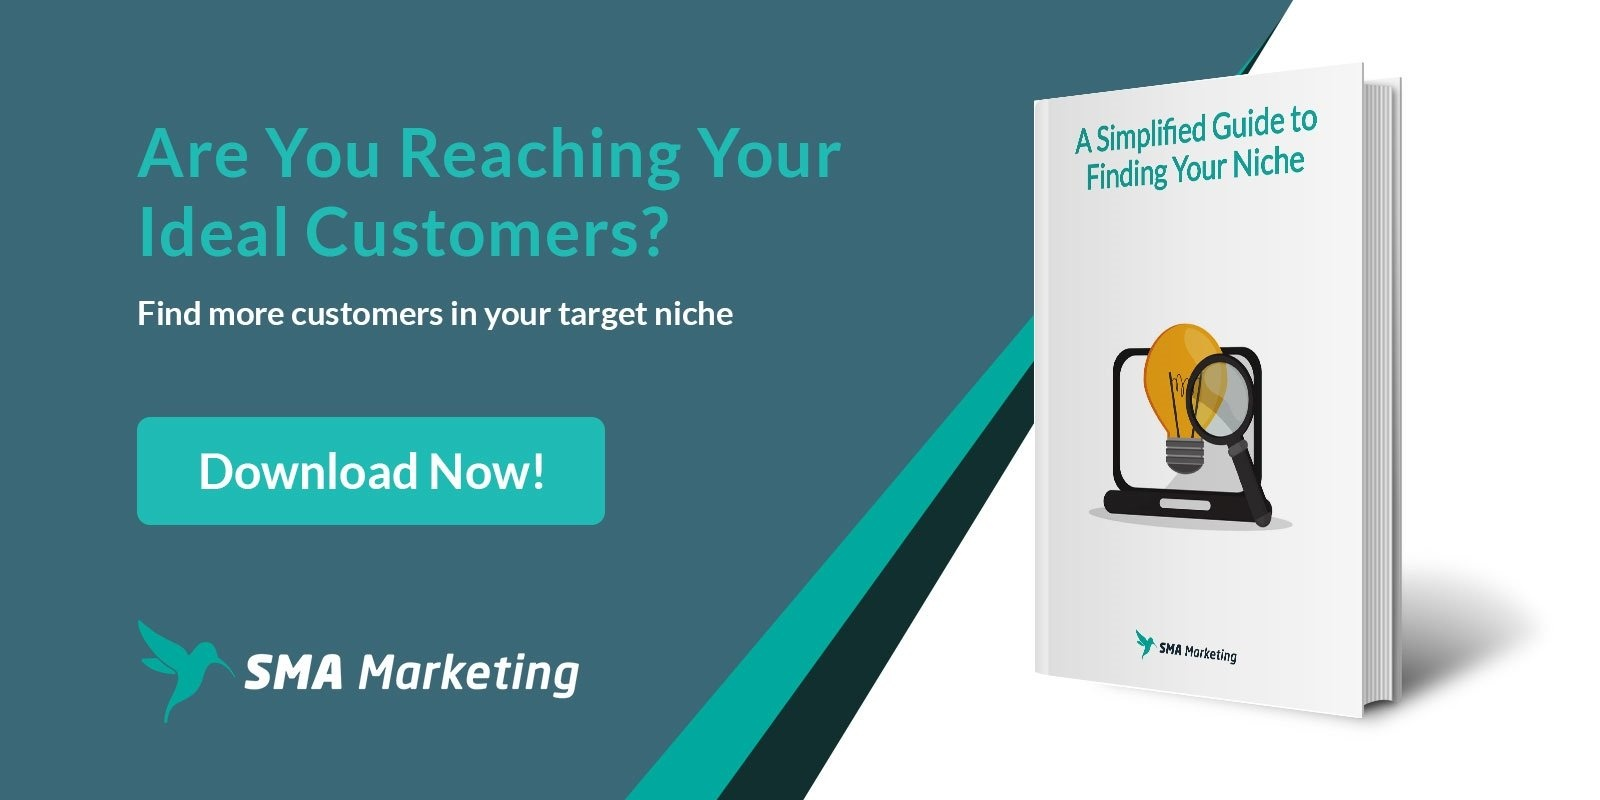 Guide to Finding Your Niche